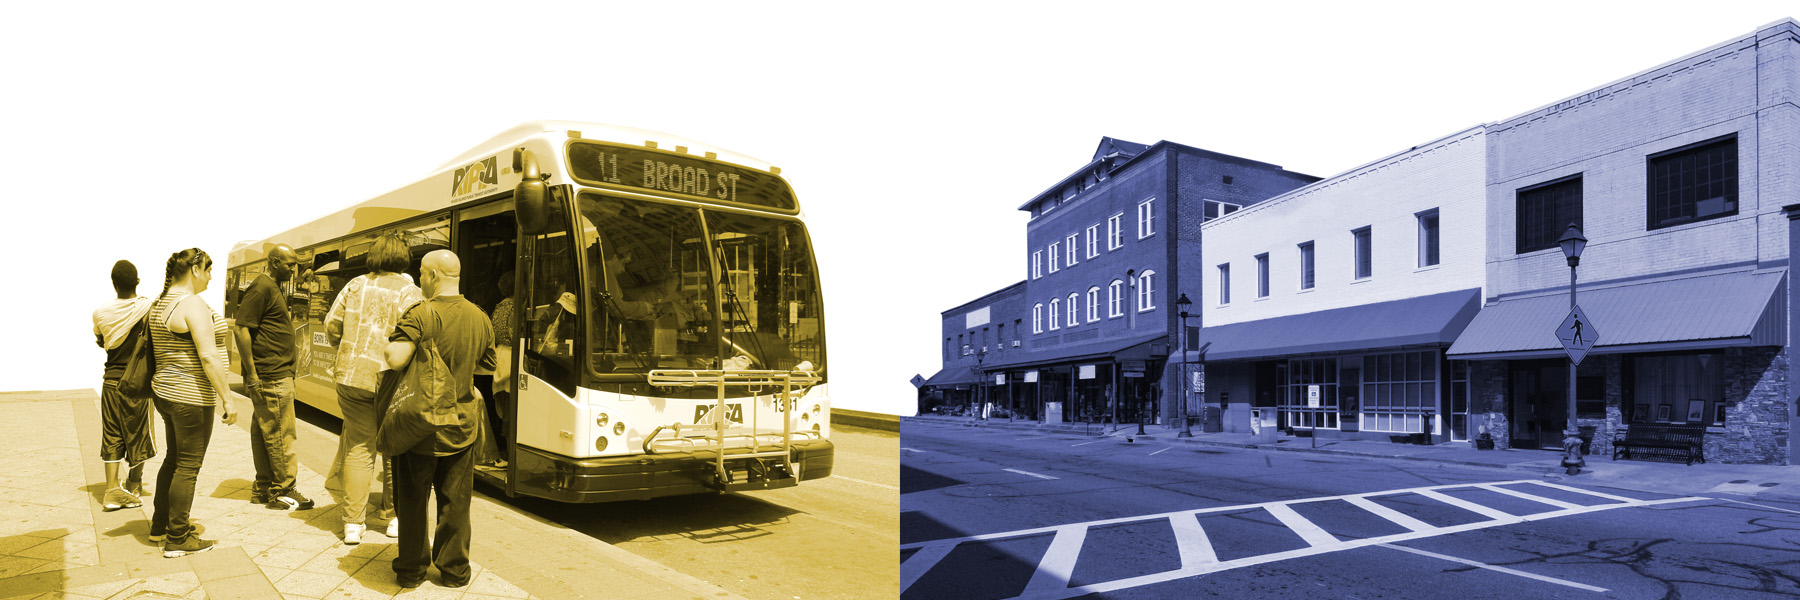 Footer banner photo with bus and streetscape